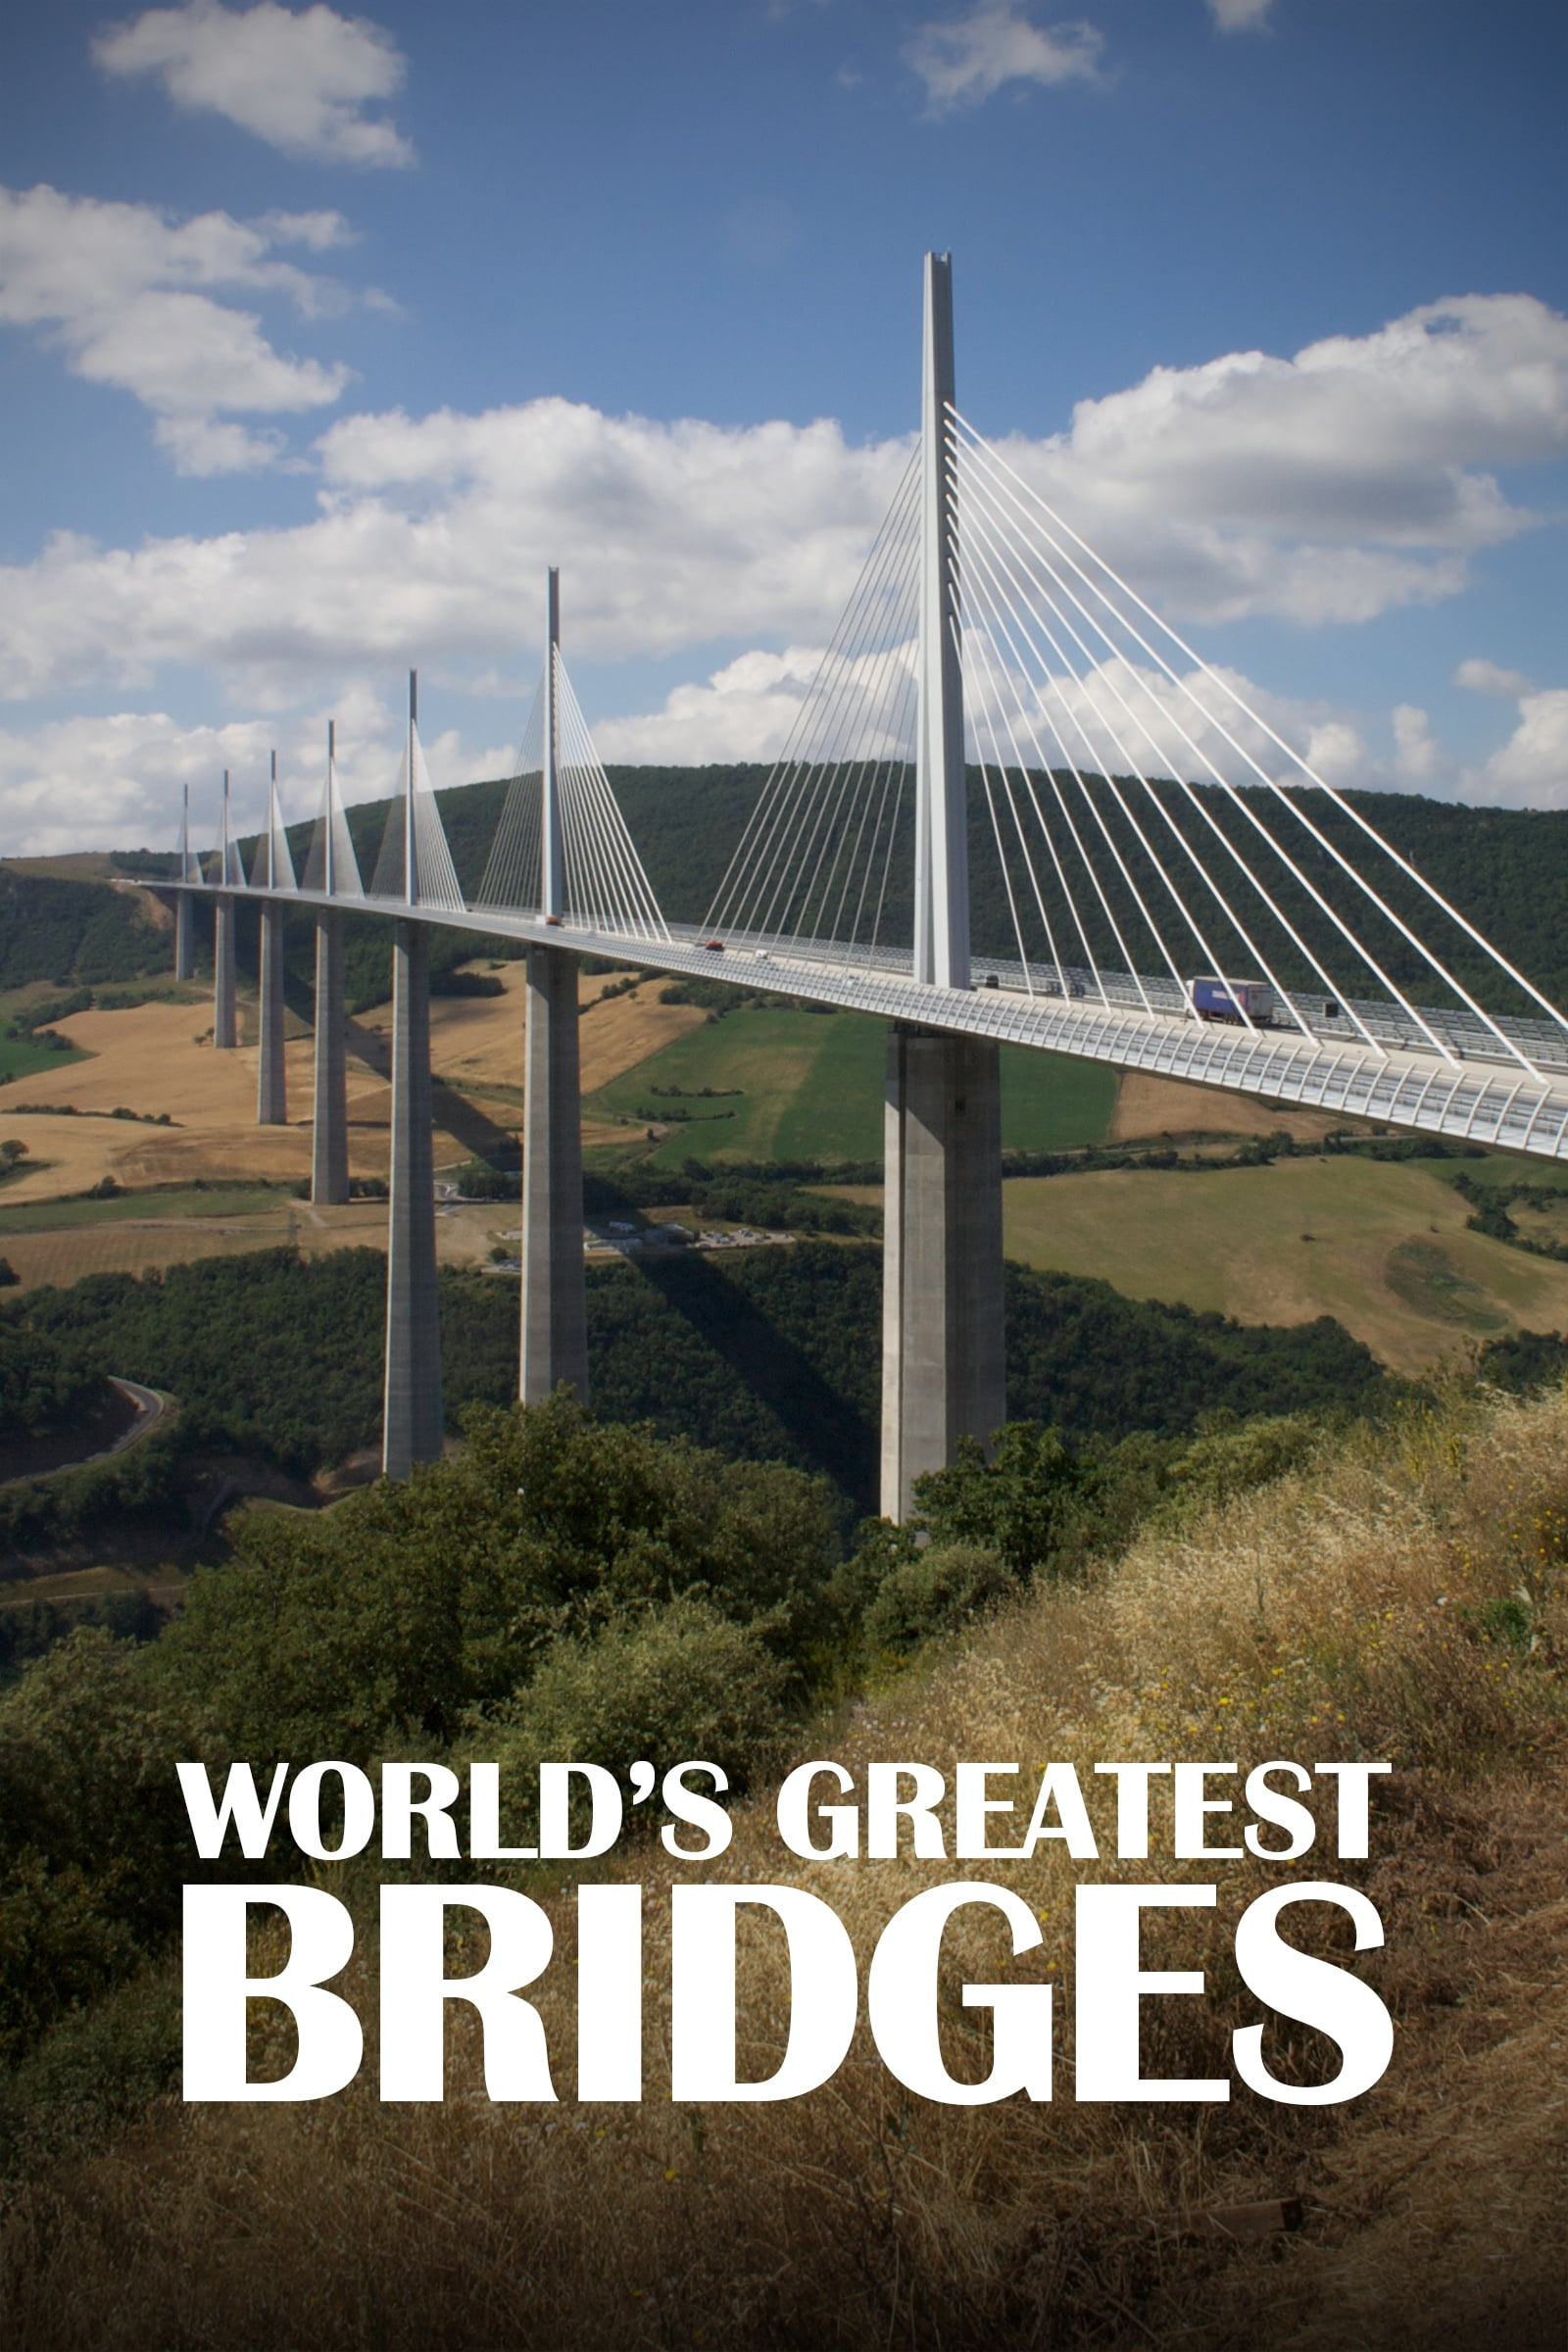 World's Greatest Bridges TV Shows About Engineering